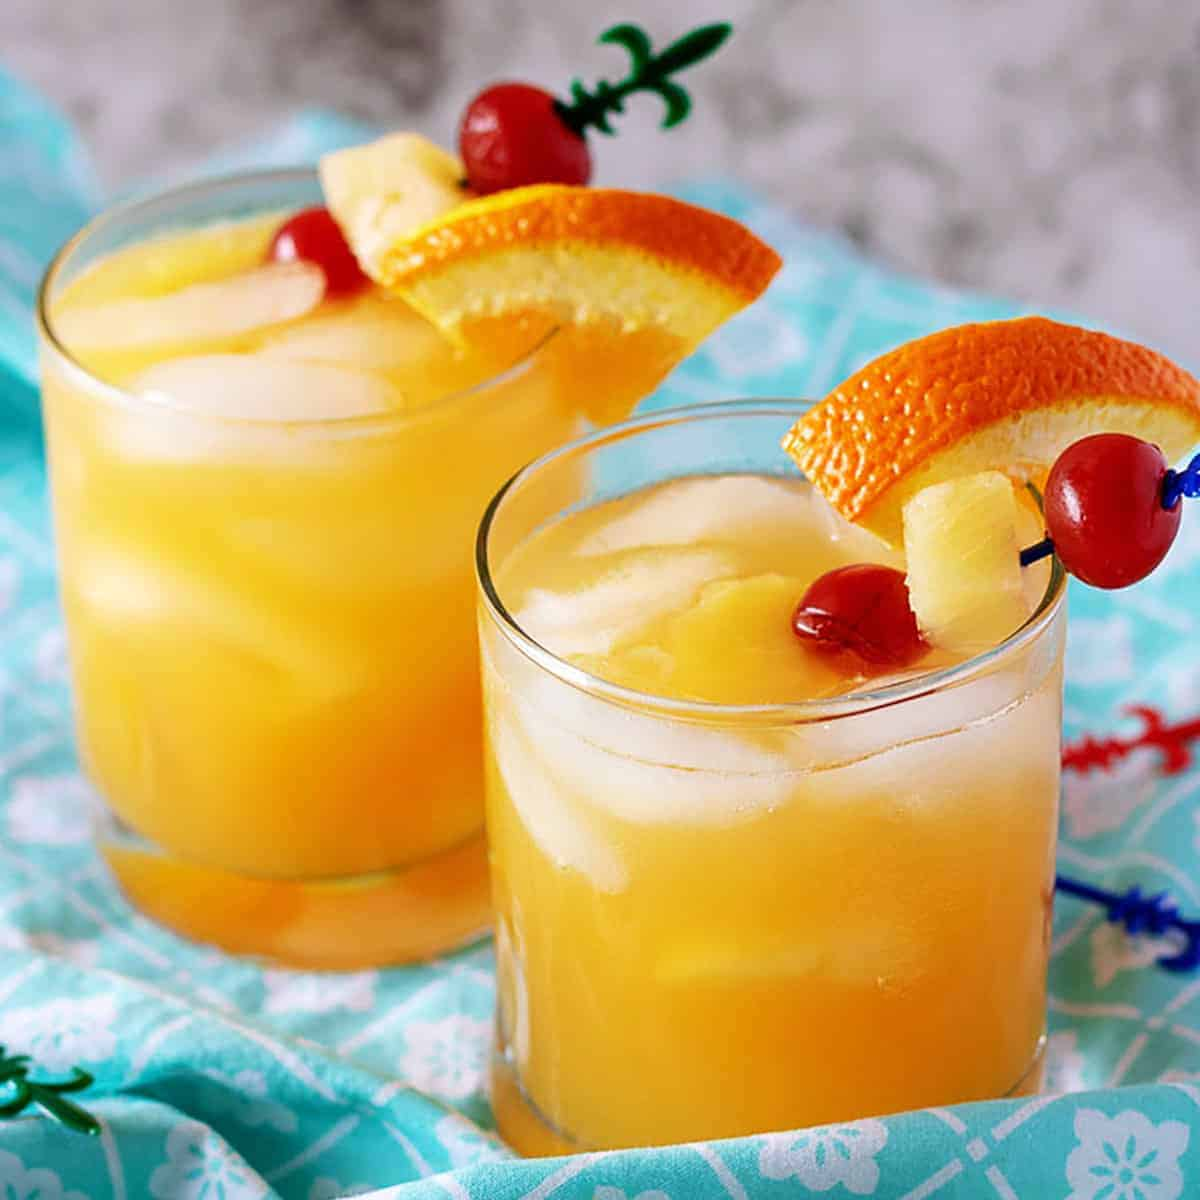 Two orange rum drinks in cocktail glasses with oranges and cherries for garnishes.